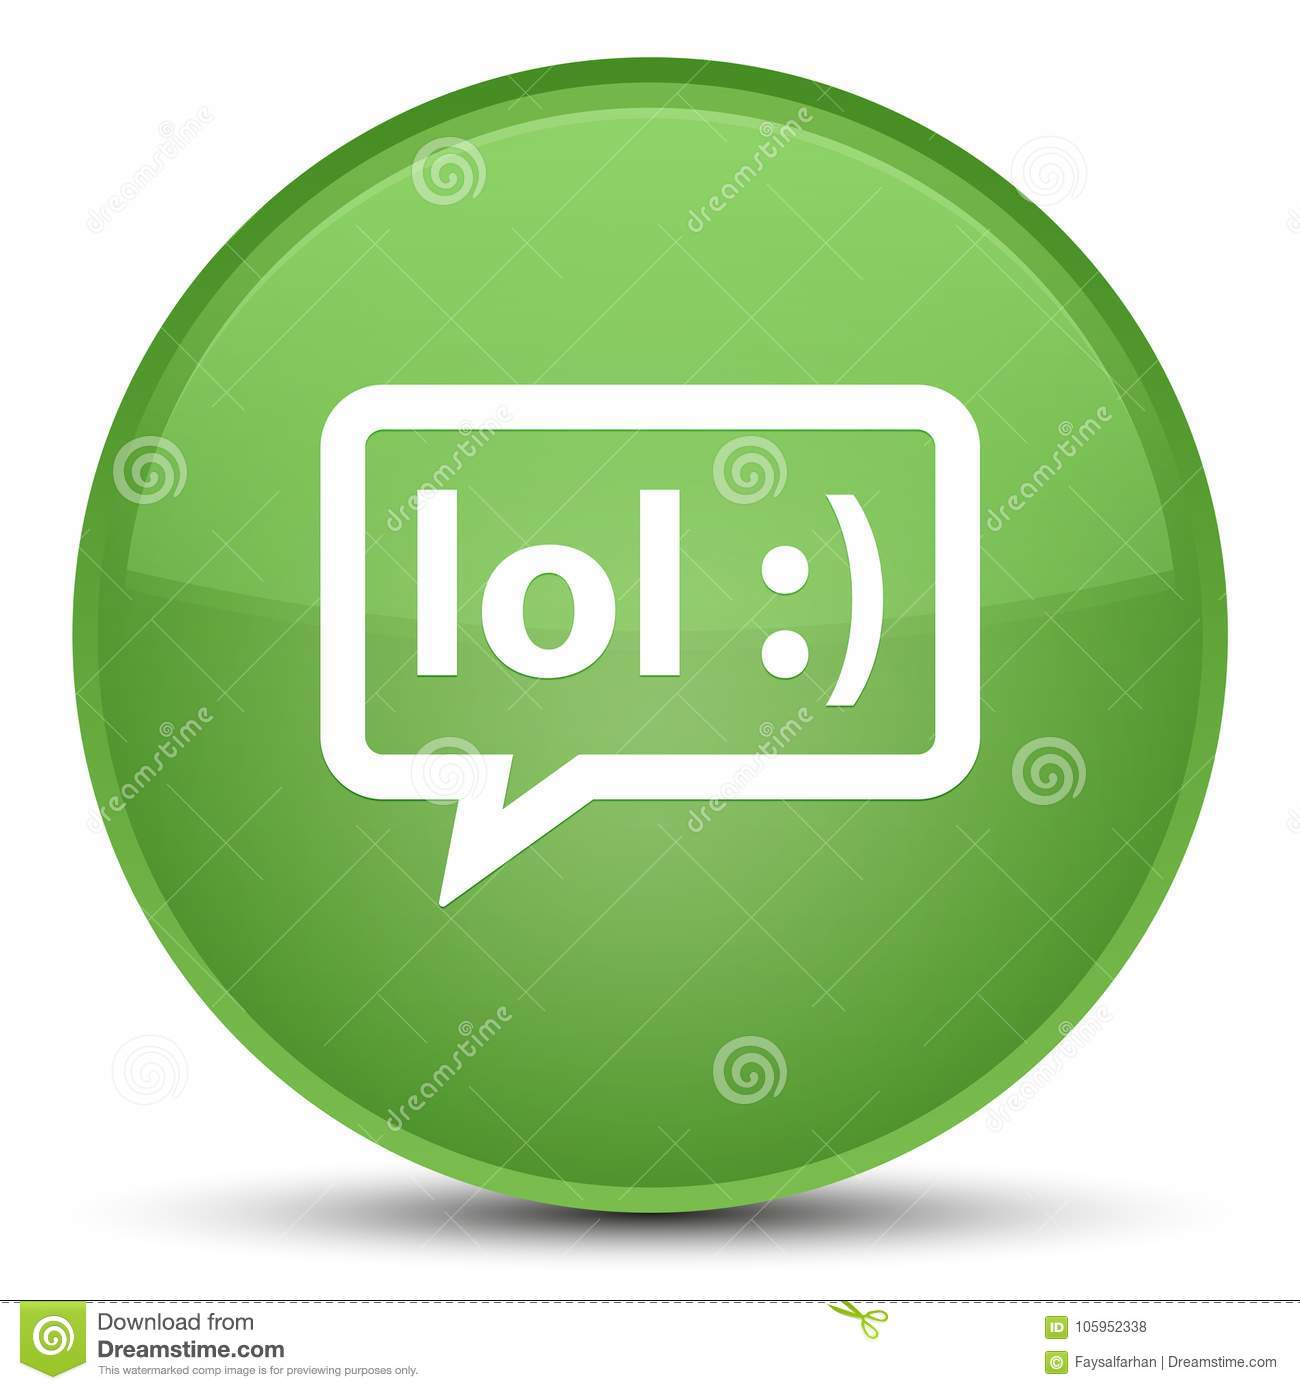 LOL bubble icon special soft green round button